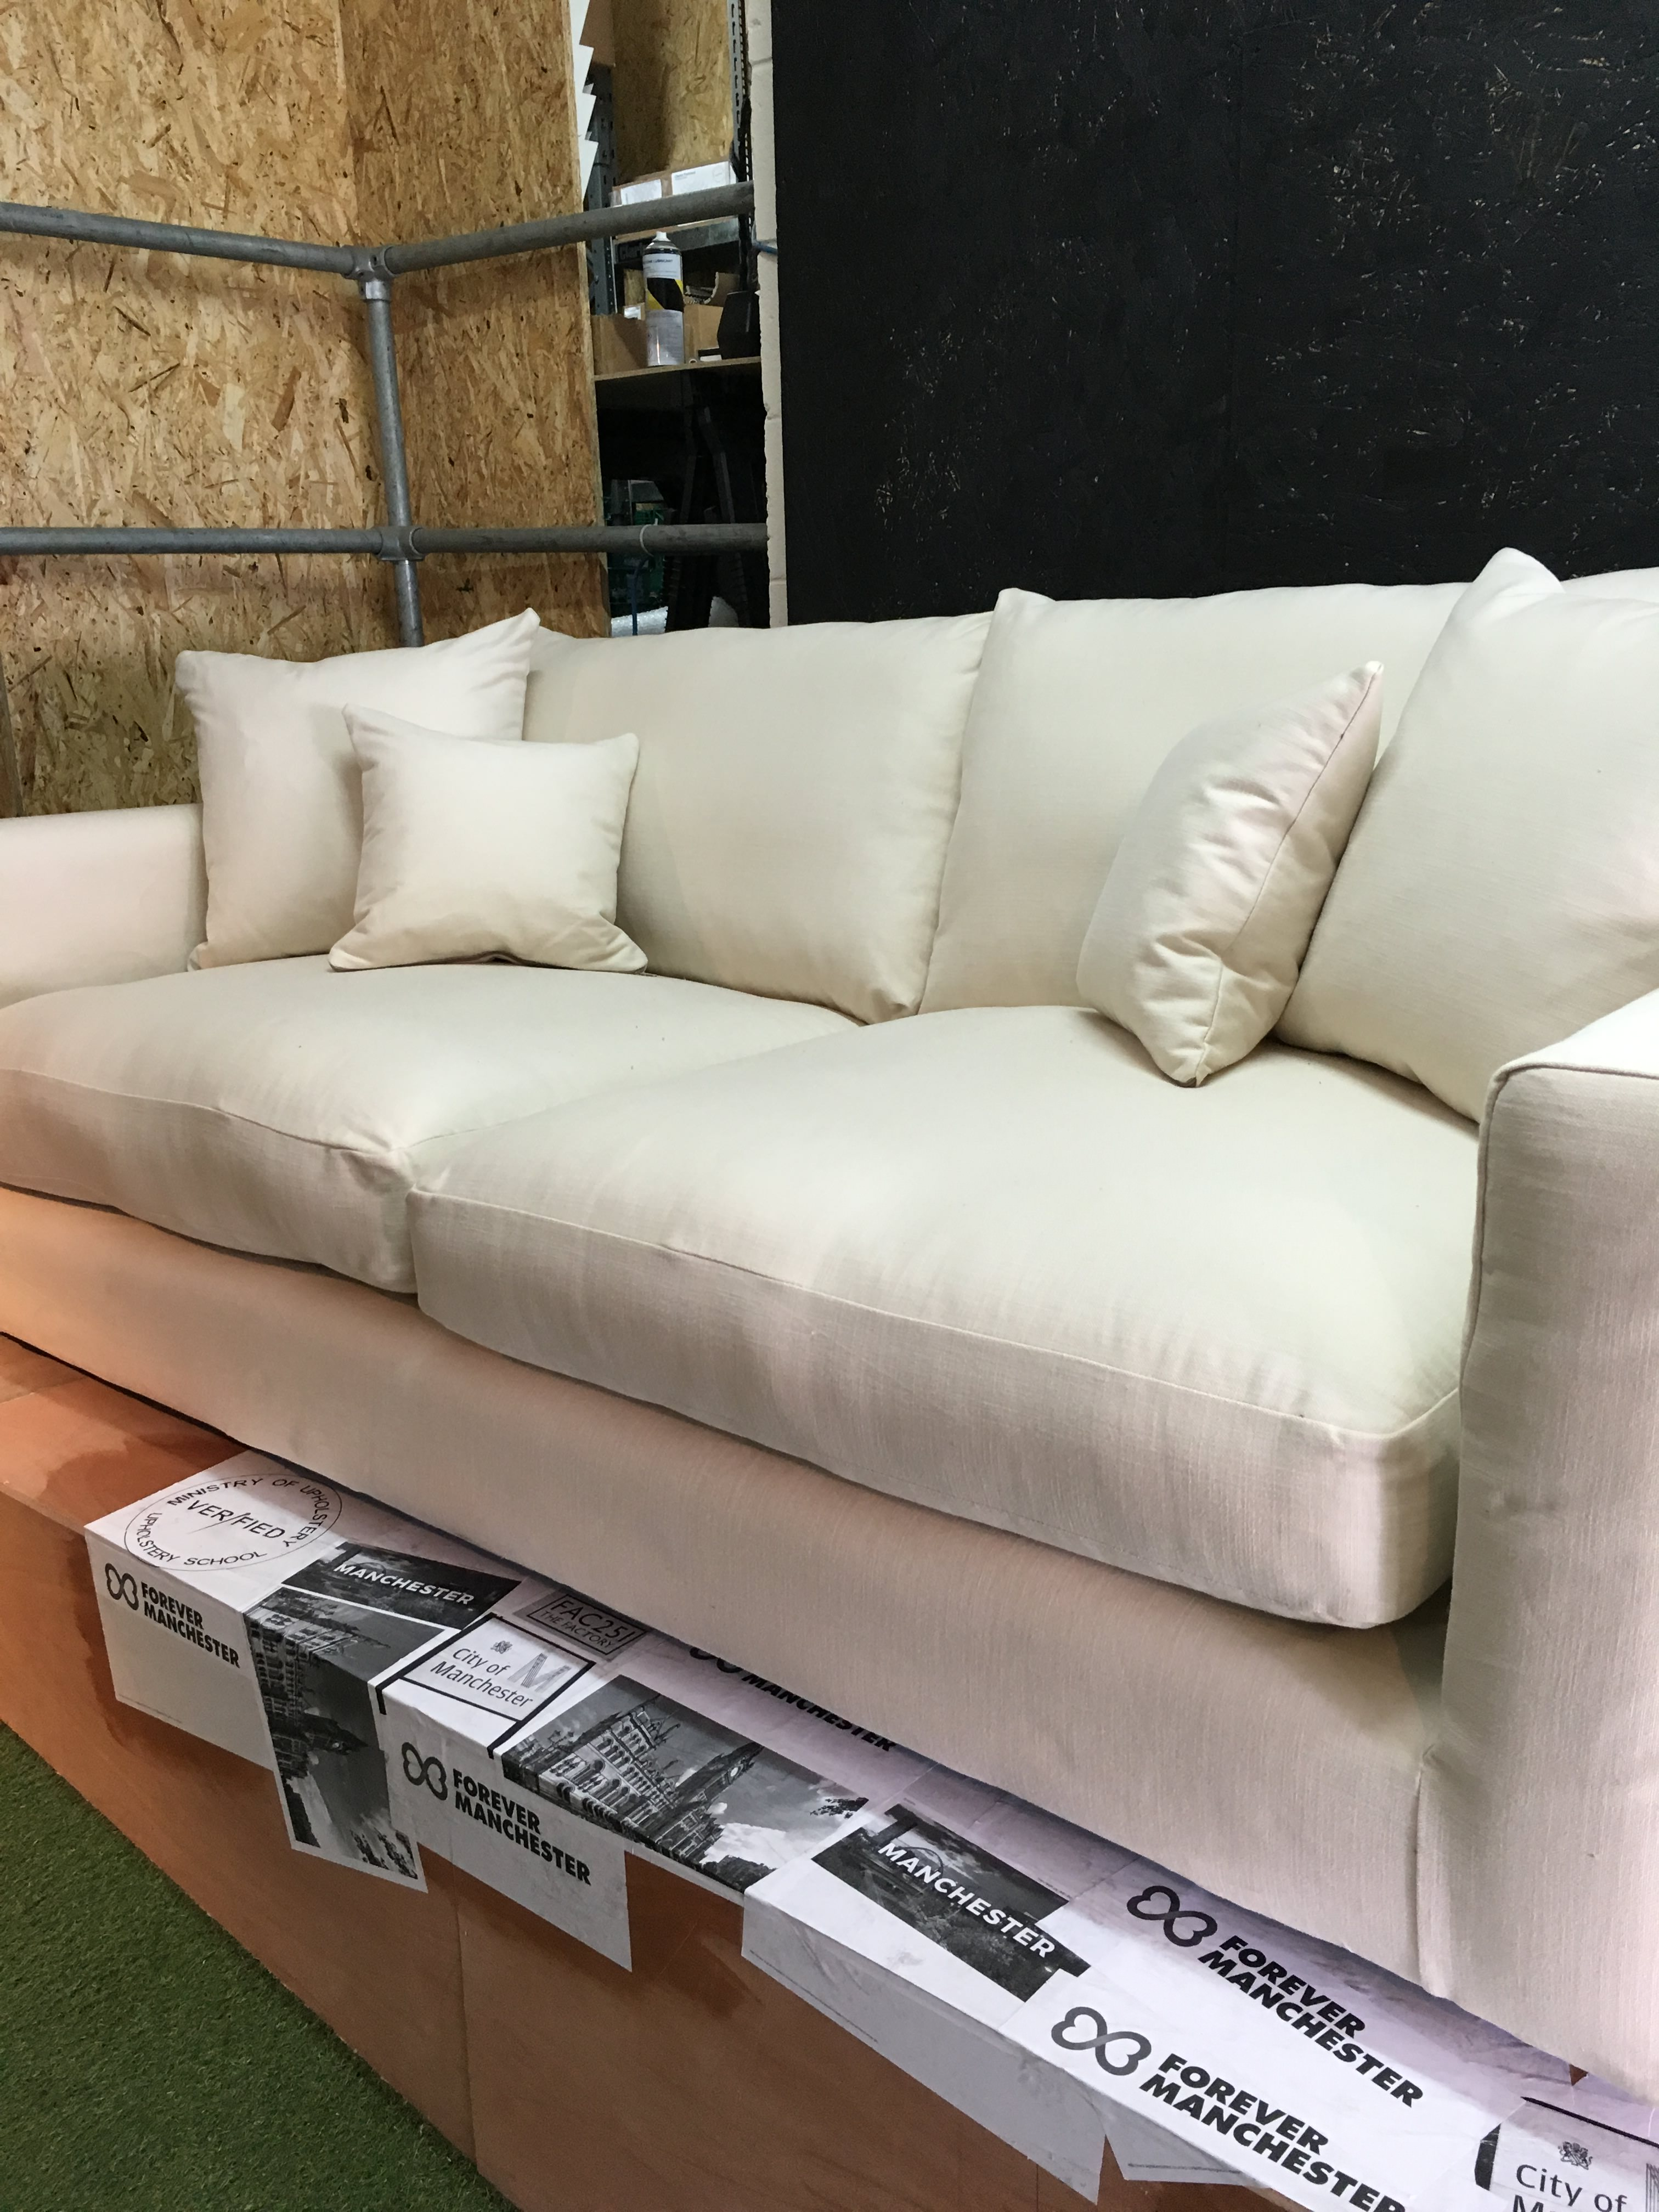 Donate A Sofa To Charity Images